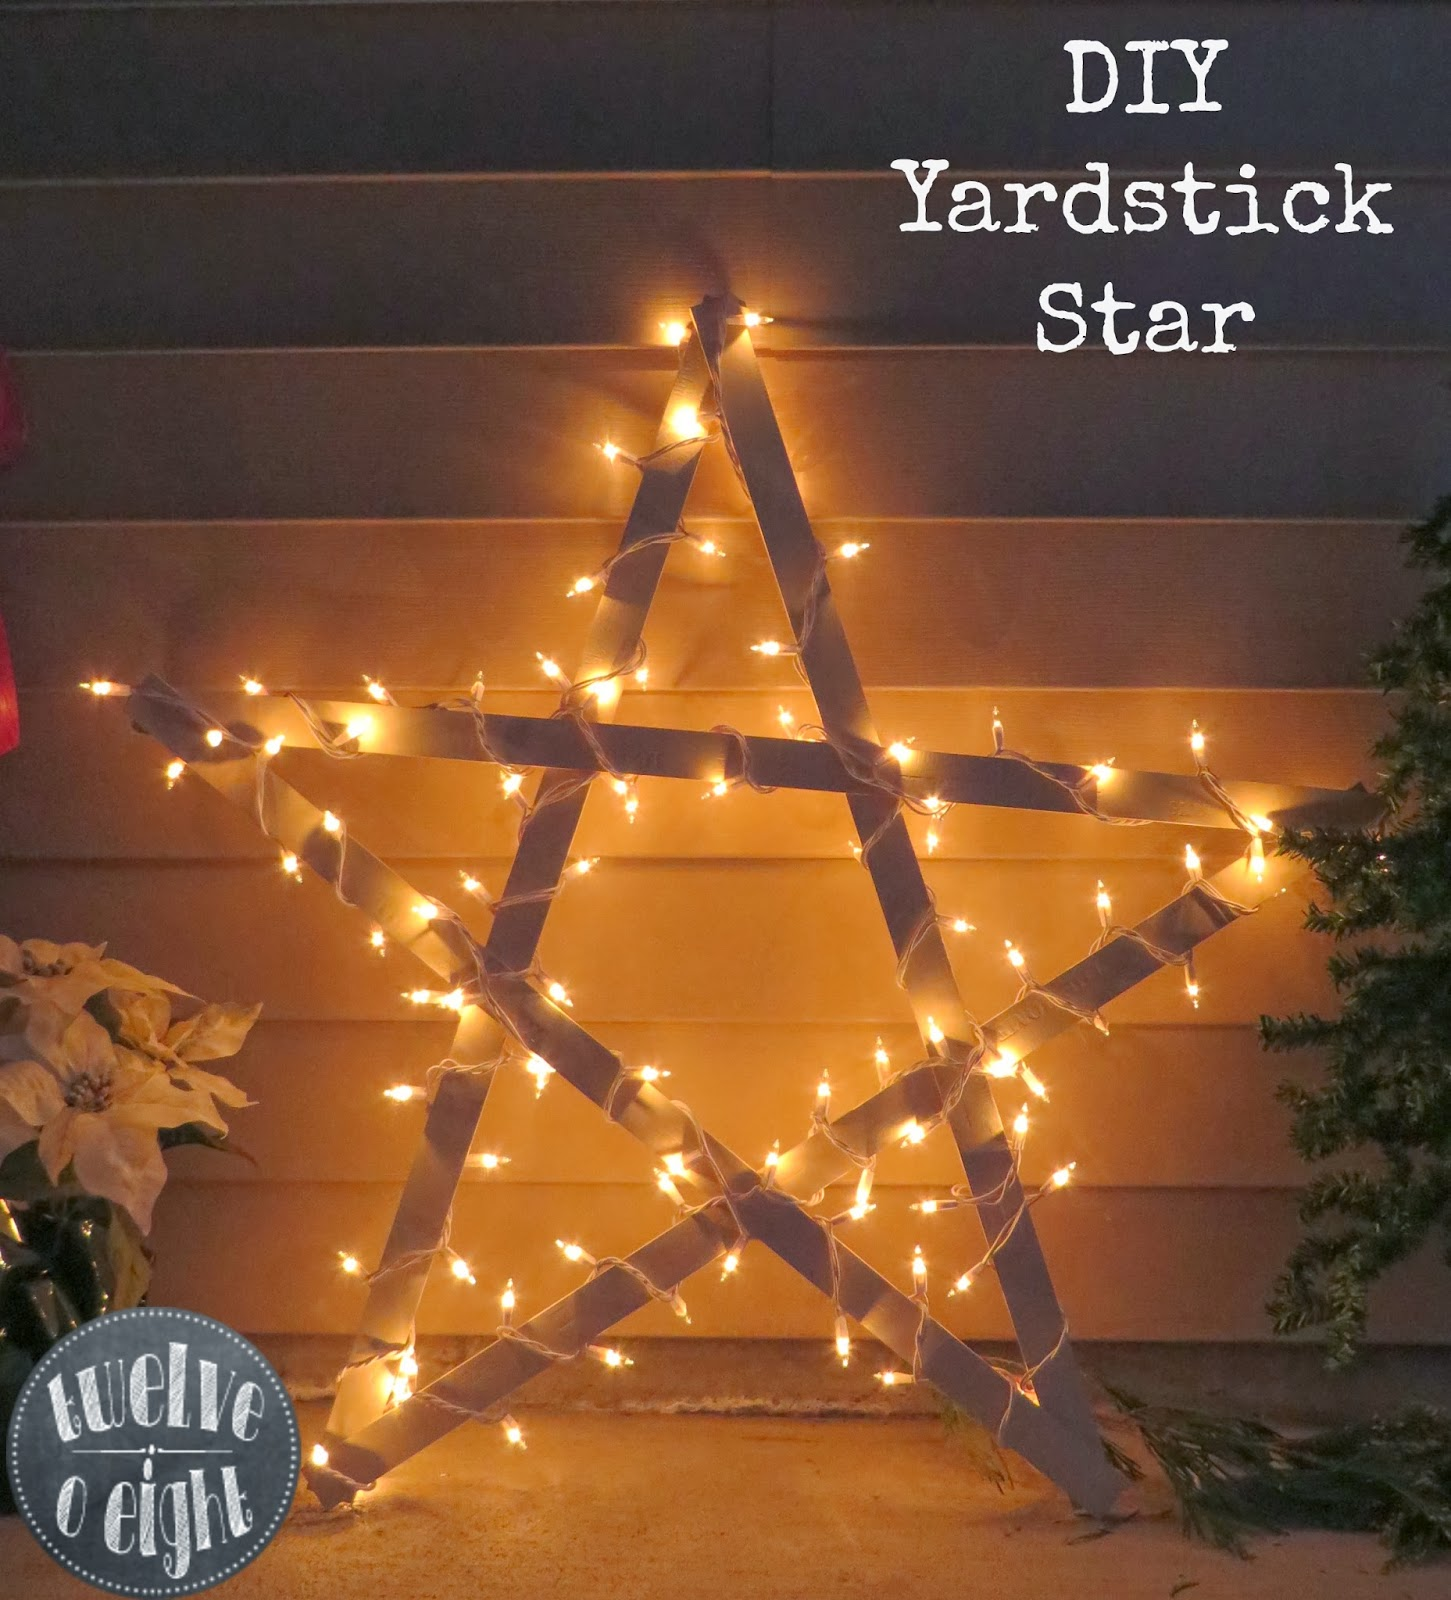 DIY Yardstick Star from Twelve O Eight